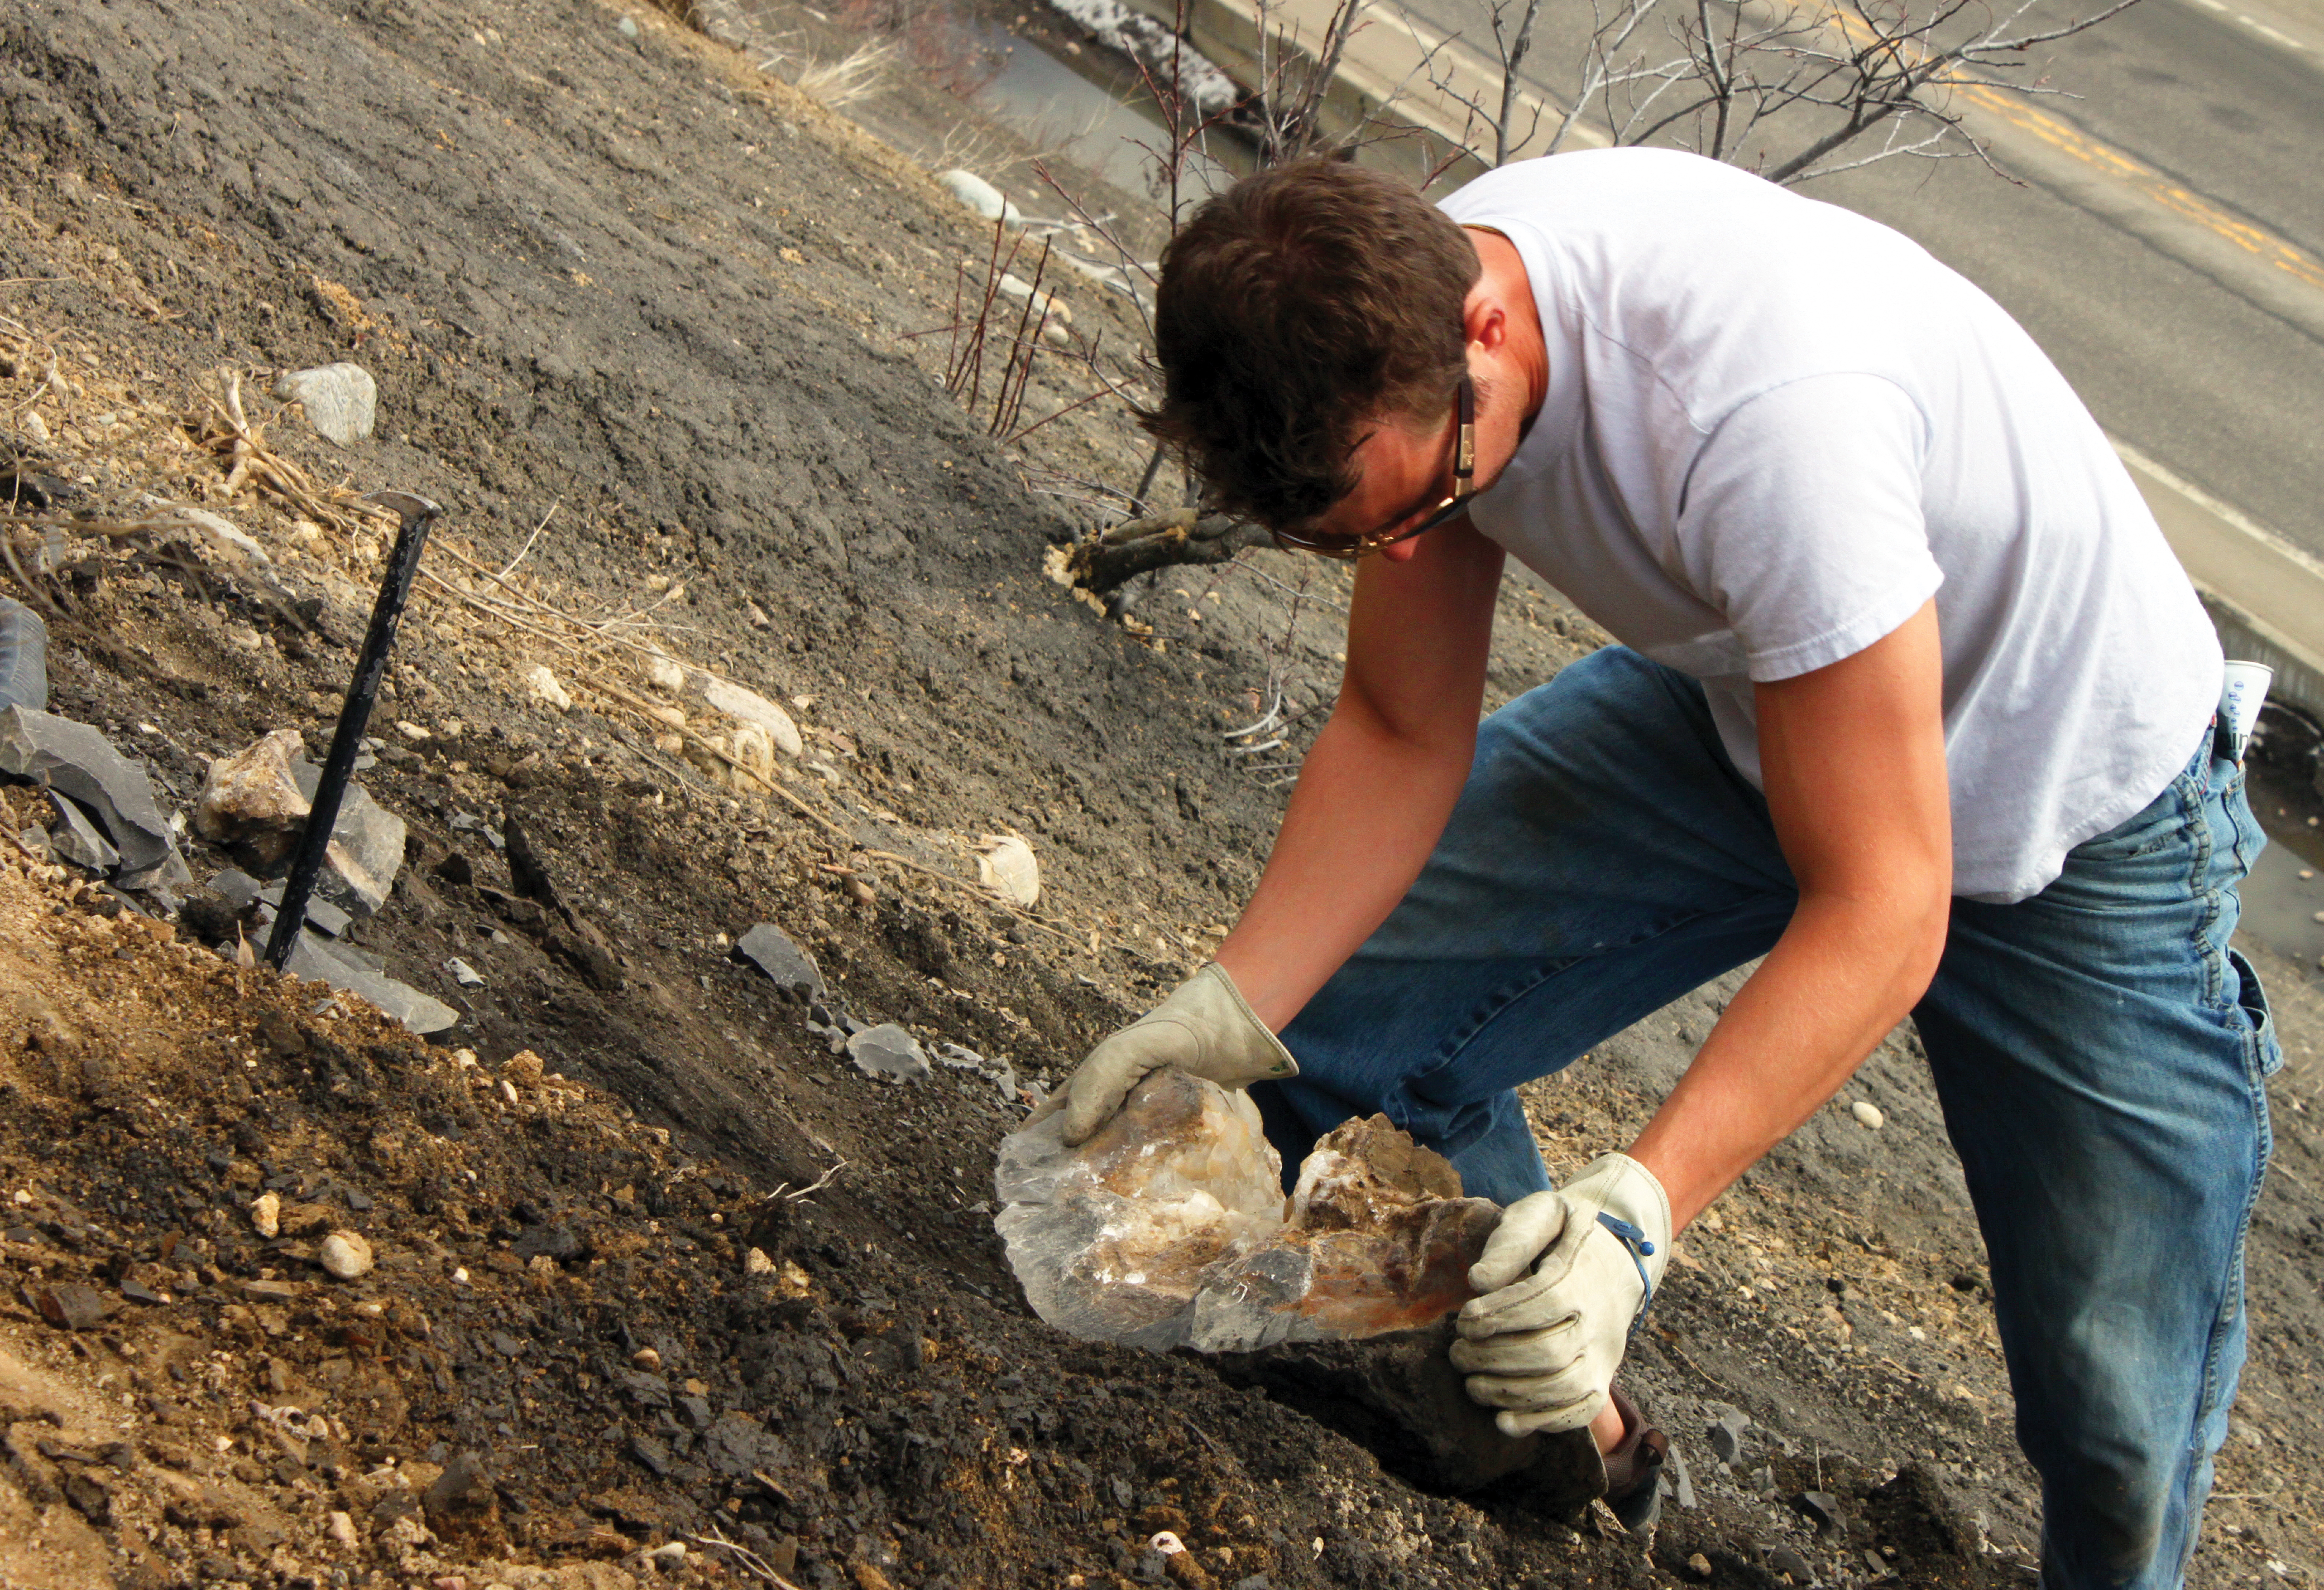 Locals find geodes by searching Steamboat's own backyard